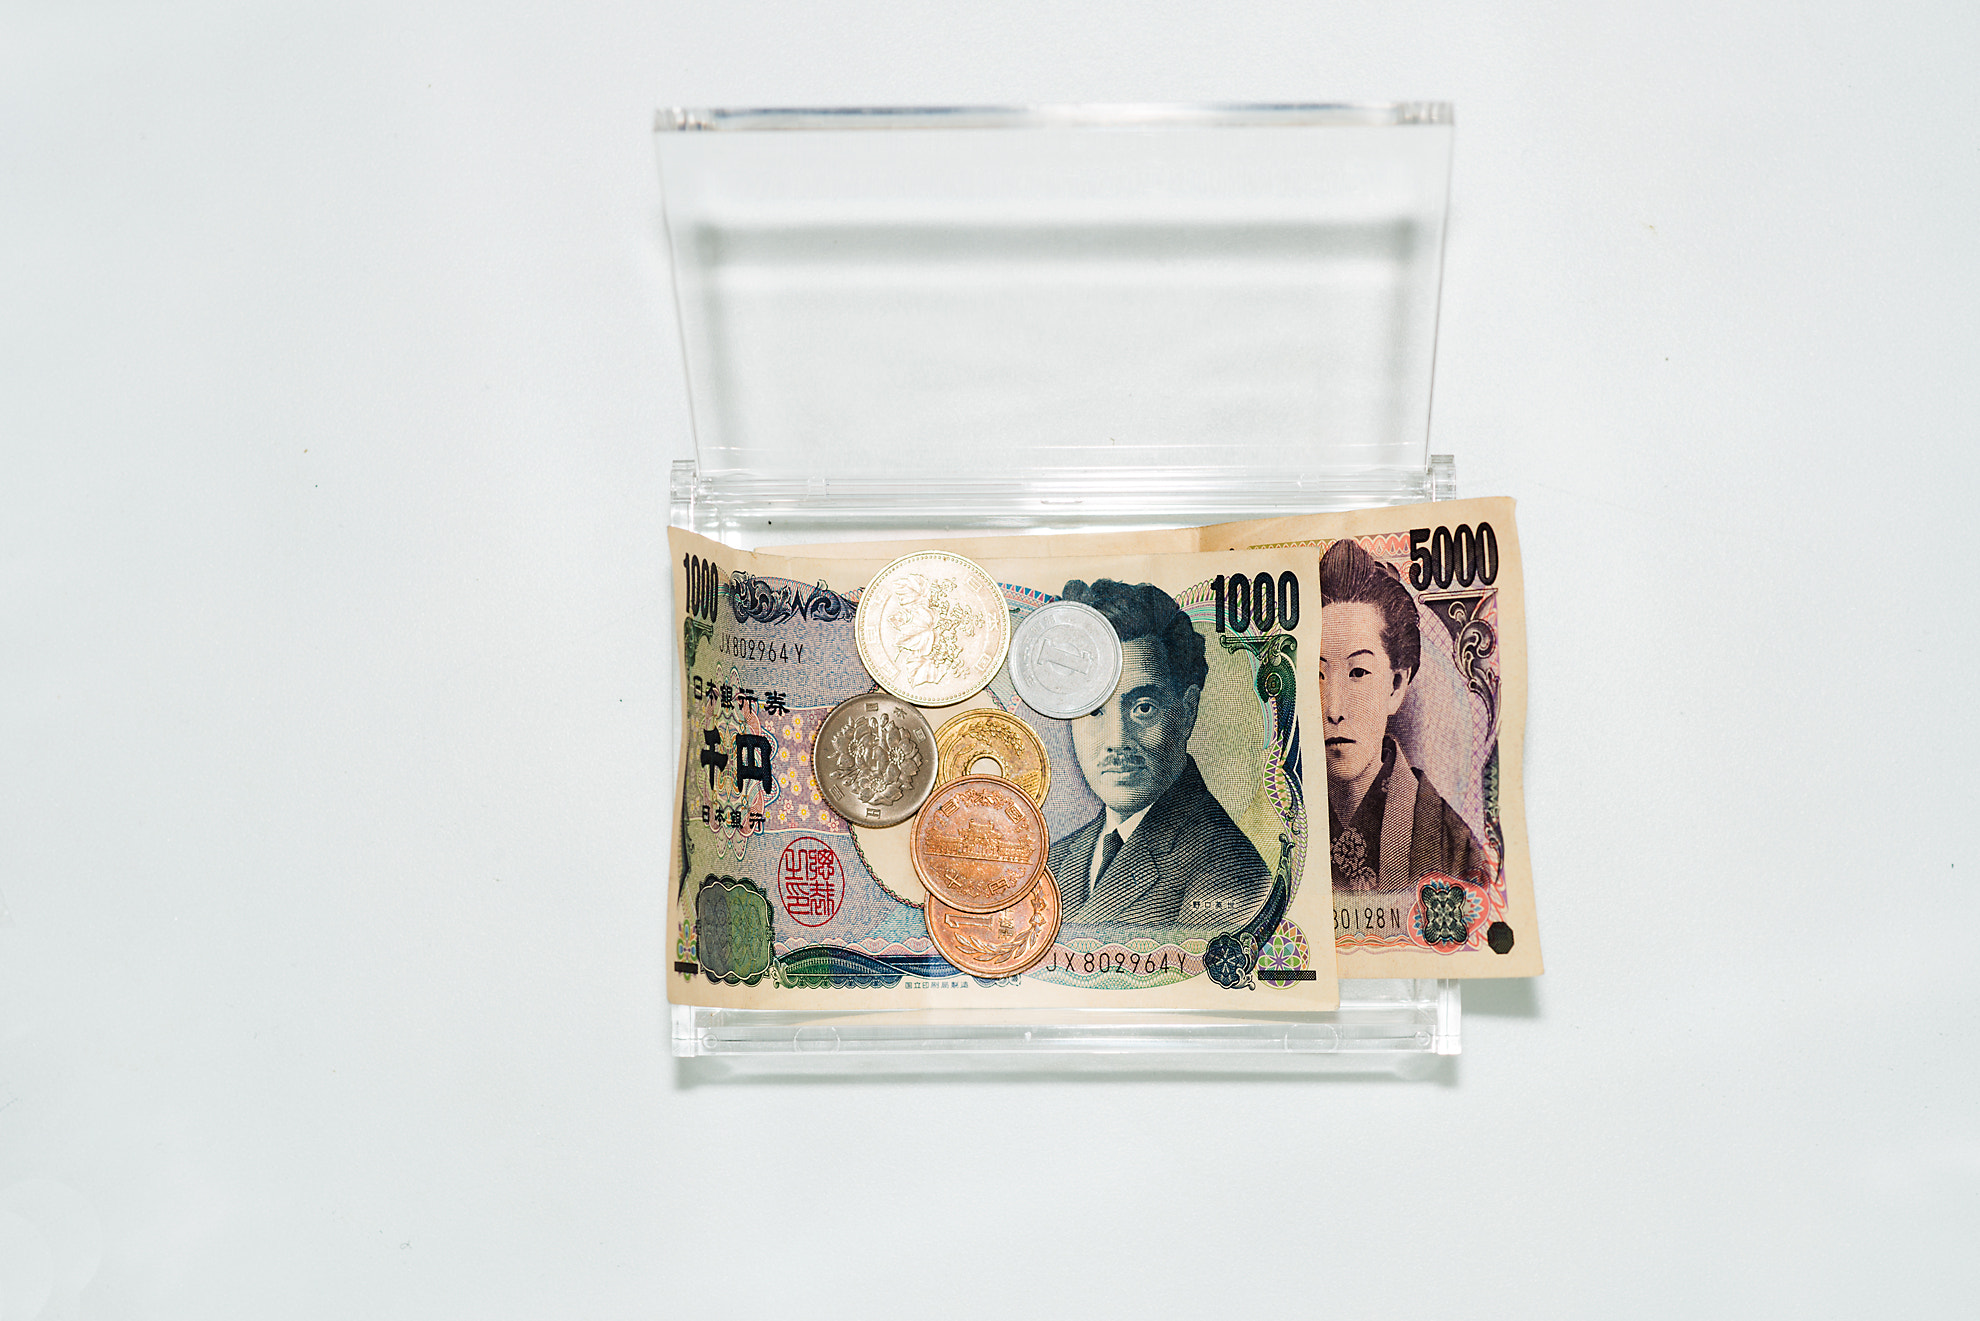 Photograph Sample3. What money In my pockets on my 31st birthday by Keisuke Nagayama on 500px